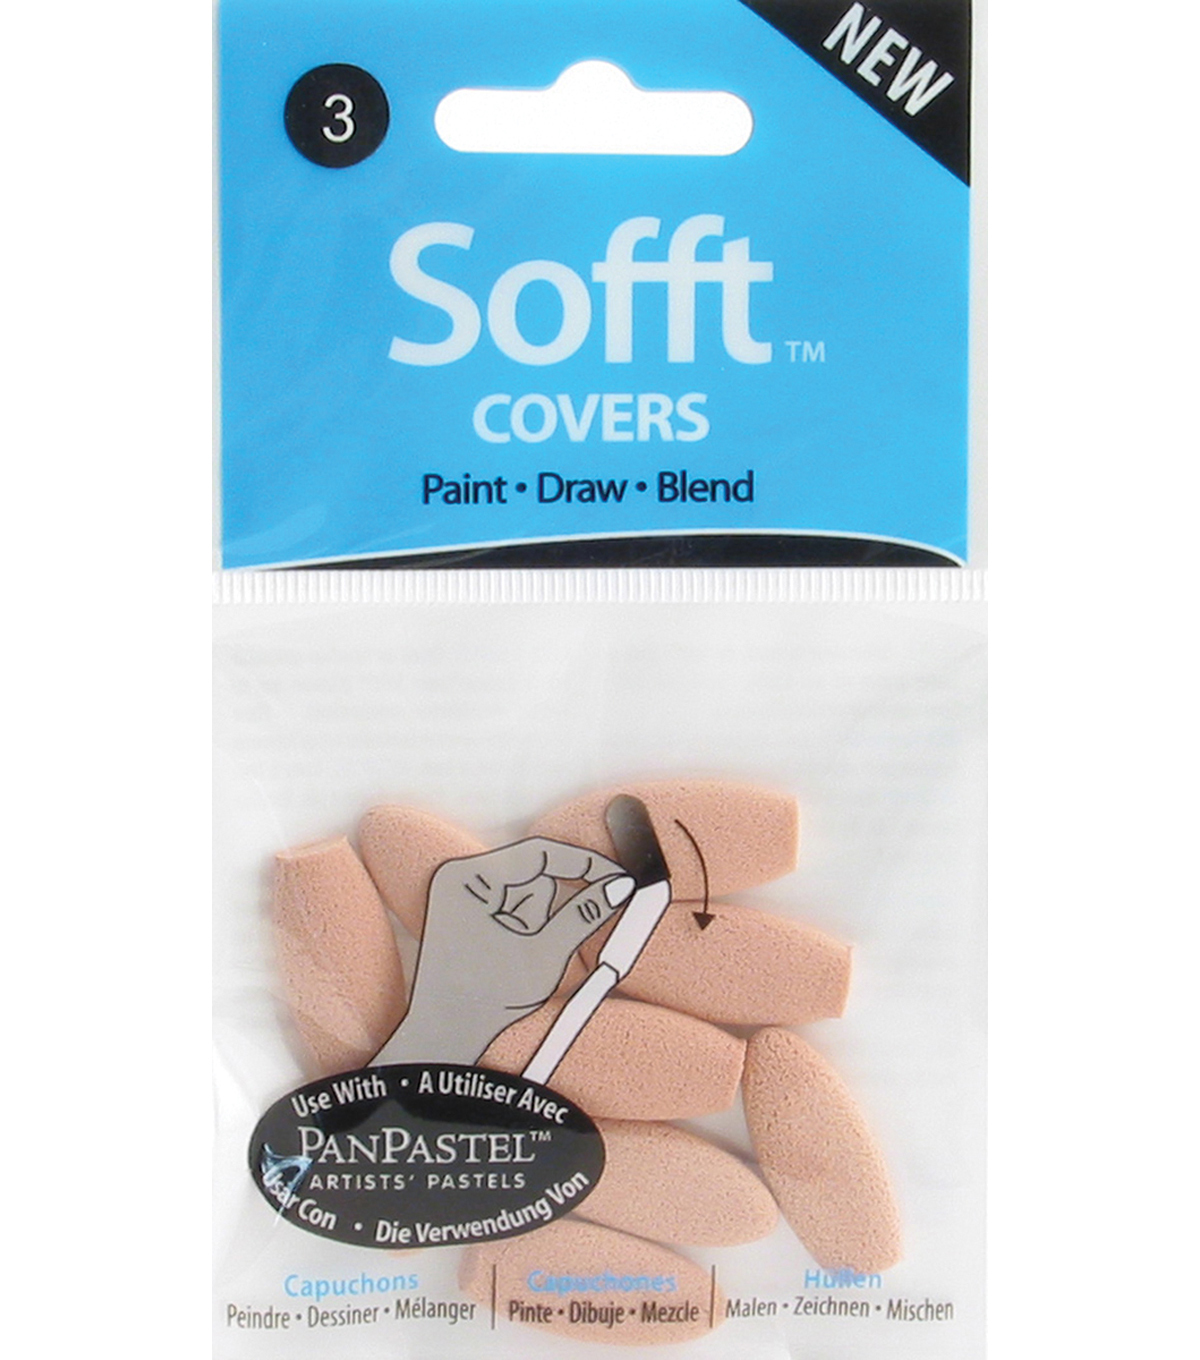 Colorfin Sofft Covers-10PK/Oval